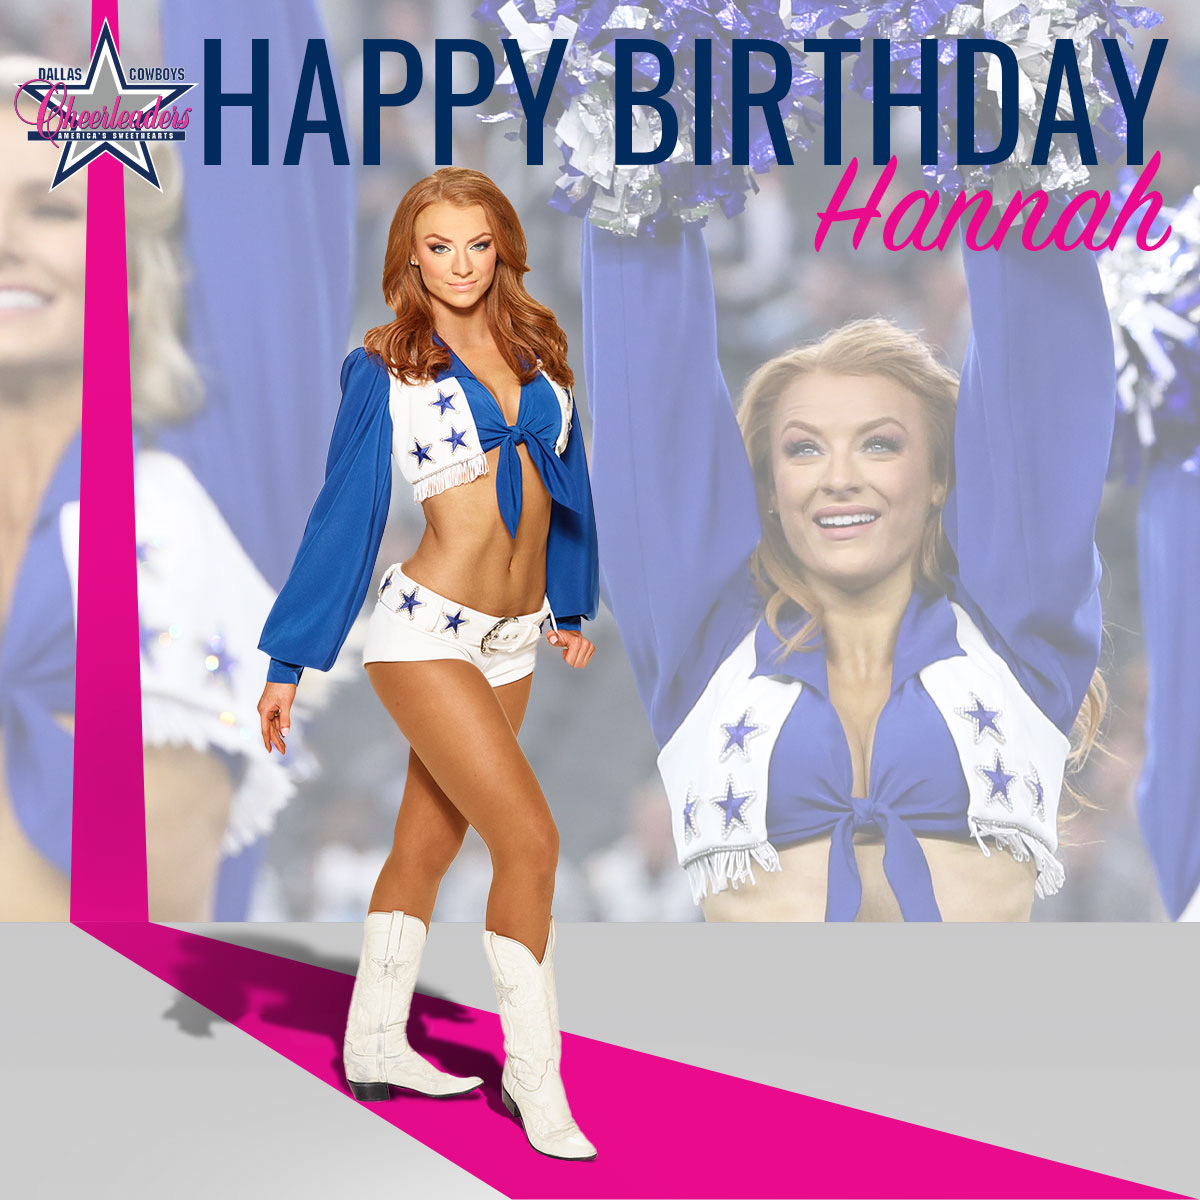 Happy birthday to @DCC_HannahA! We hope you have a great day and an even better year! Celebrate with Hannah by leaving her birthday wishes in the comments below. 🎉🎁🎈 https://t.co/1JUIIoMALP